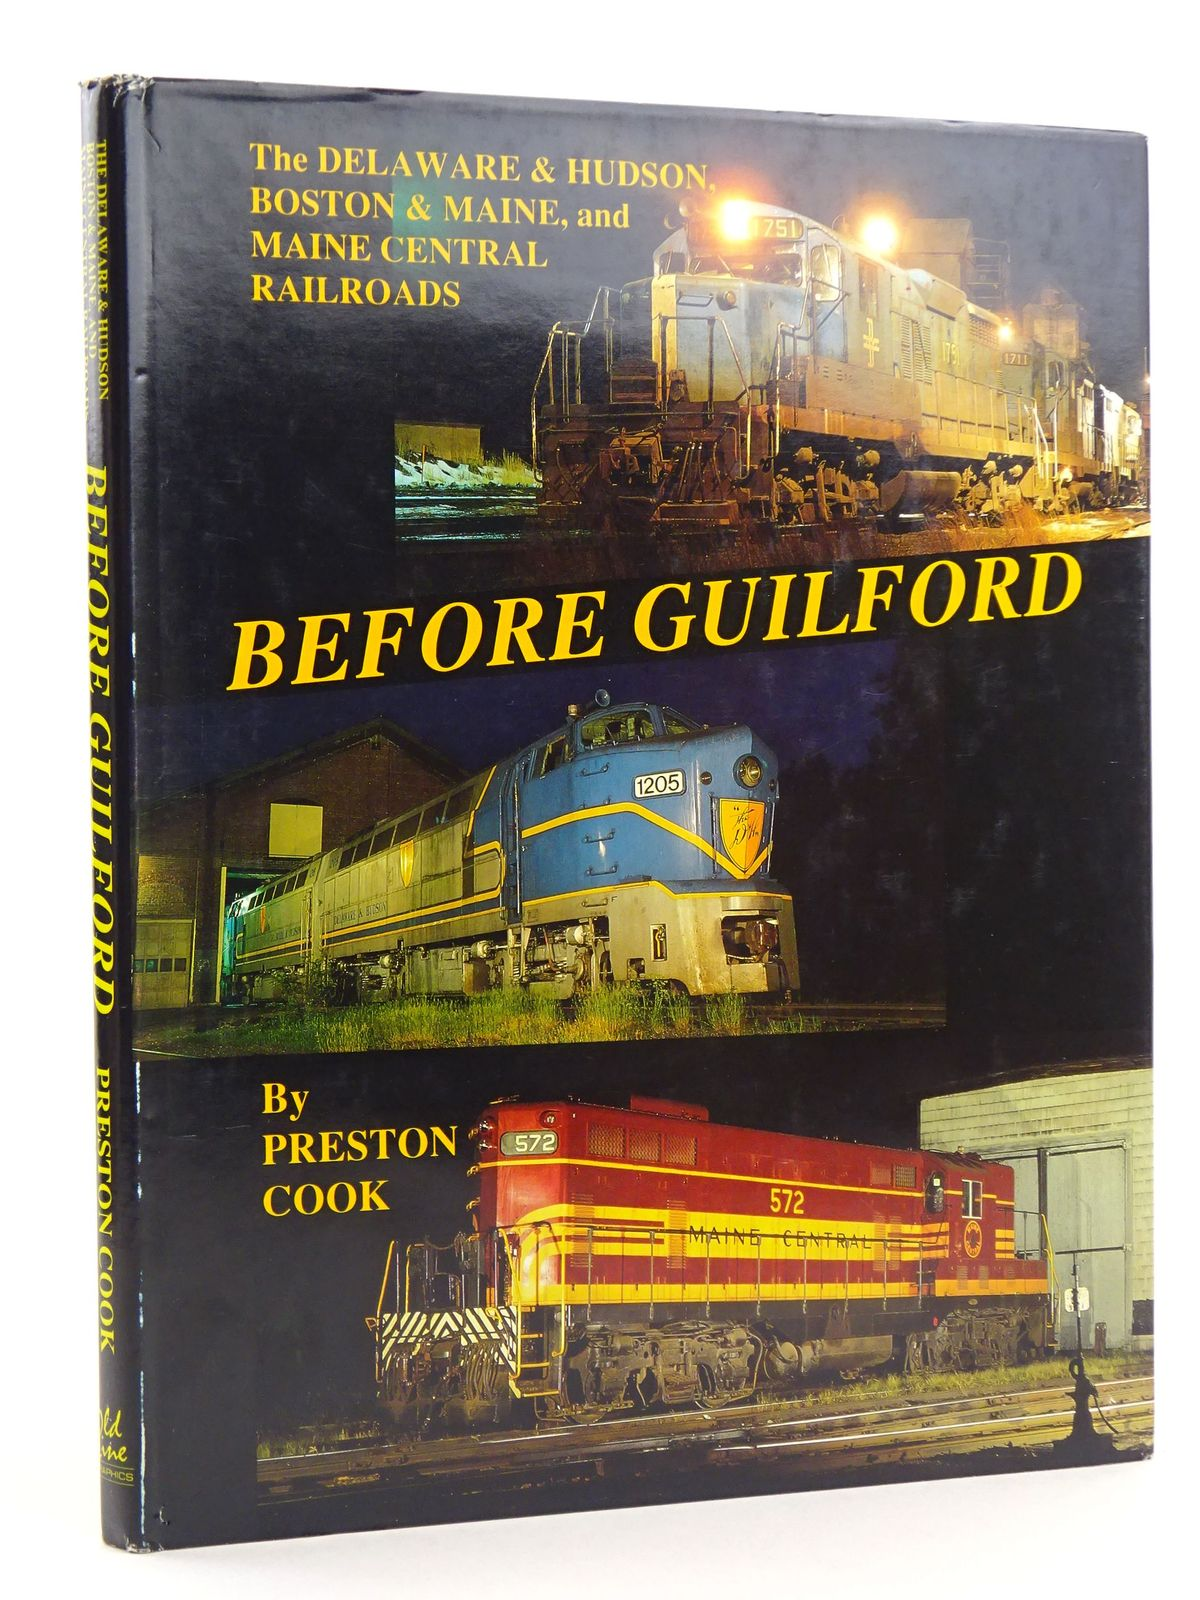 Photo of THE DELAWARE & HUDSON, BOSTON & MAINE, AND MAINE CENTRAIL RAILROADS BEFORE GUILFORD